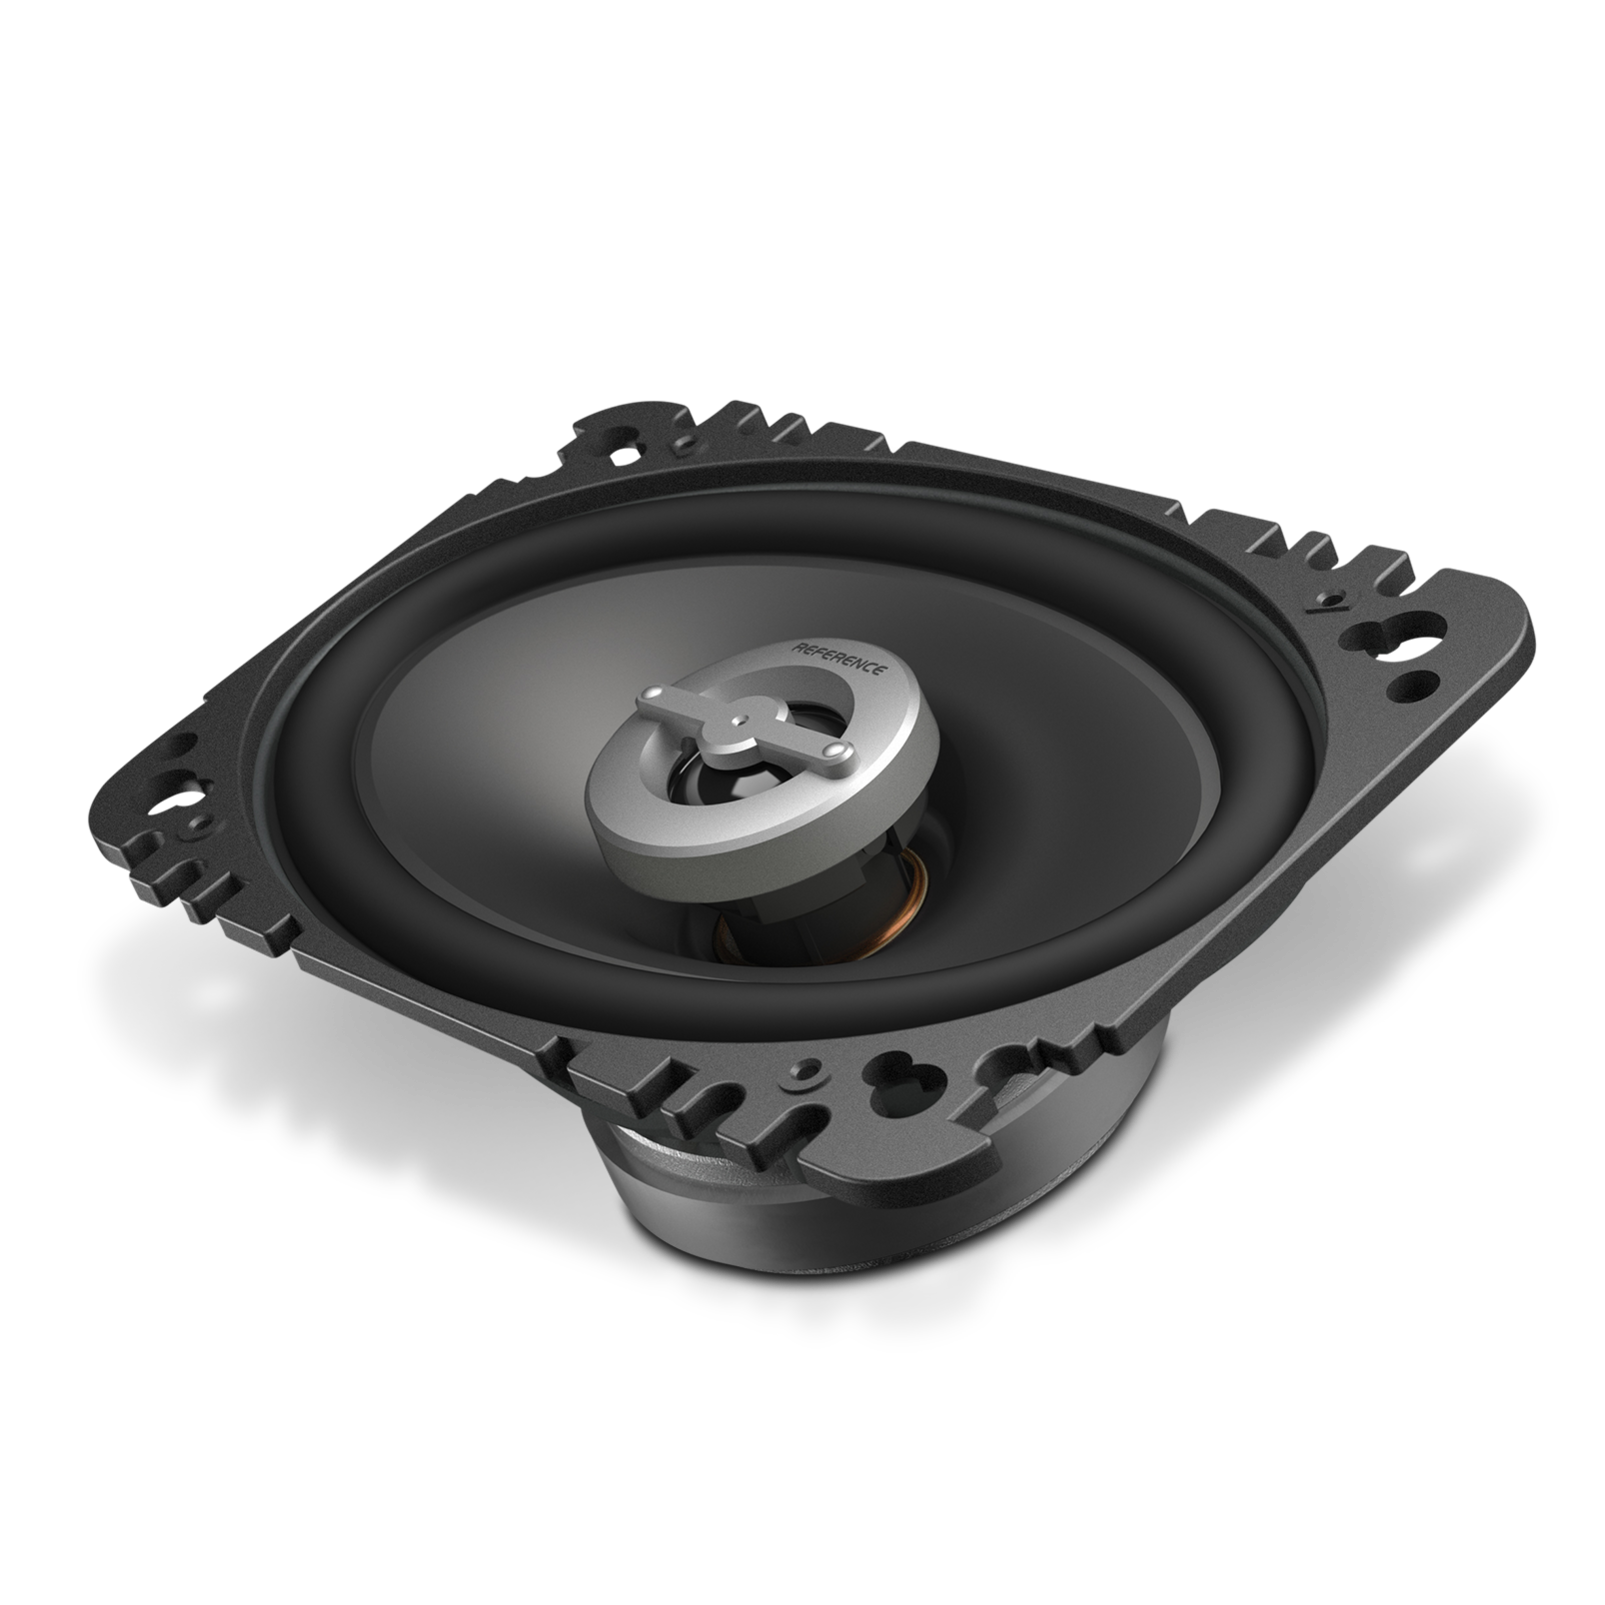 "Reference 6402cfx - Black - A 4"" x 6"", custom-fit, two-way, high-fidelity coaxial speaker with true 4-ohm technology - Hero"